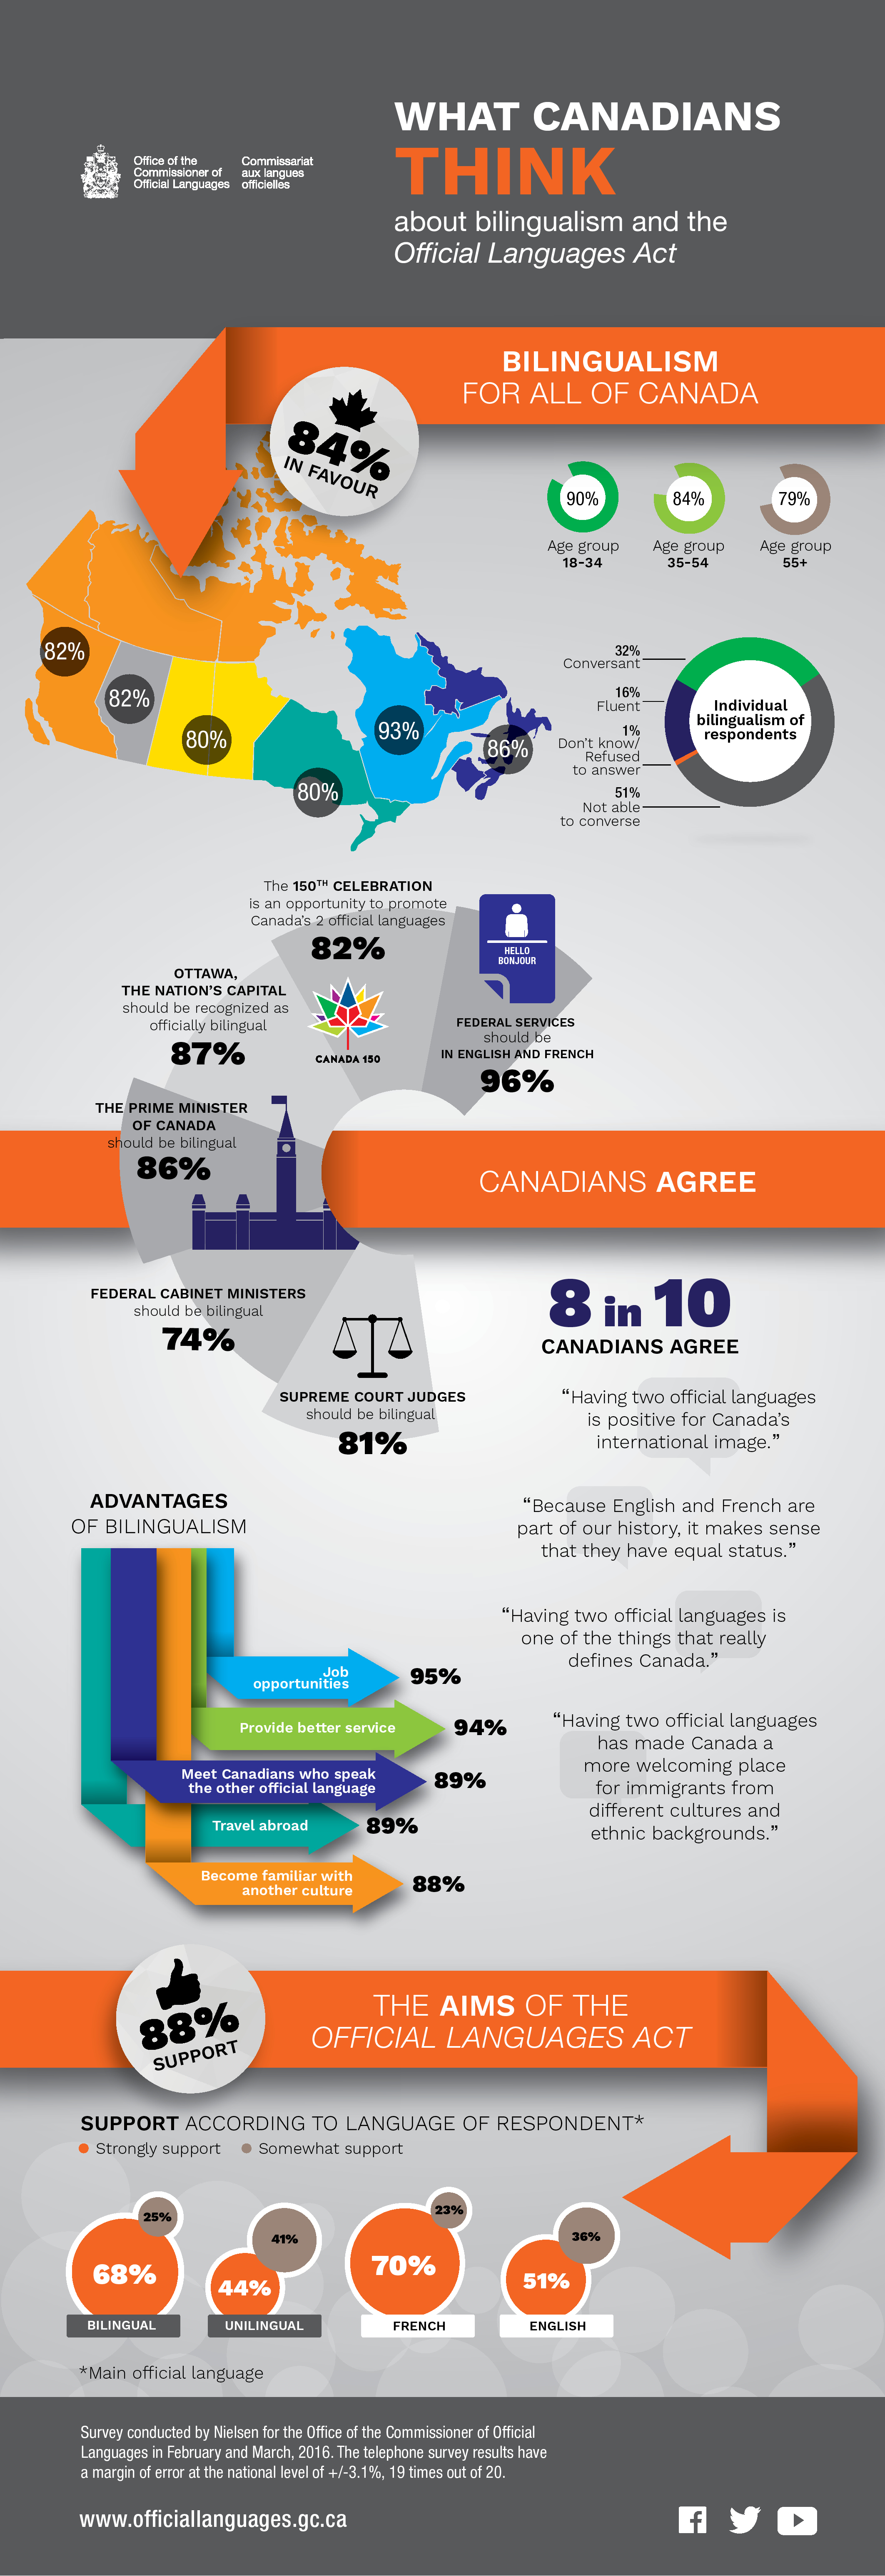 What Canadians think about bilingualism and the Official Languages Act. Details in text following the infographic.